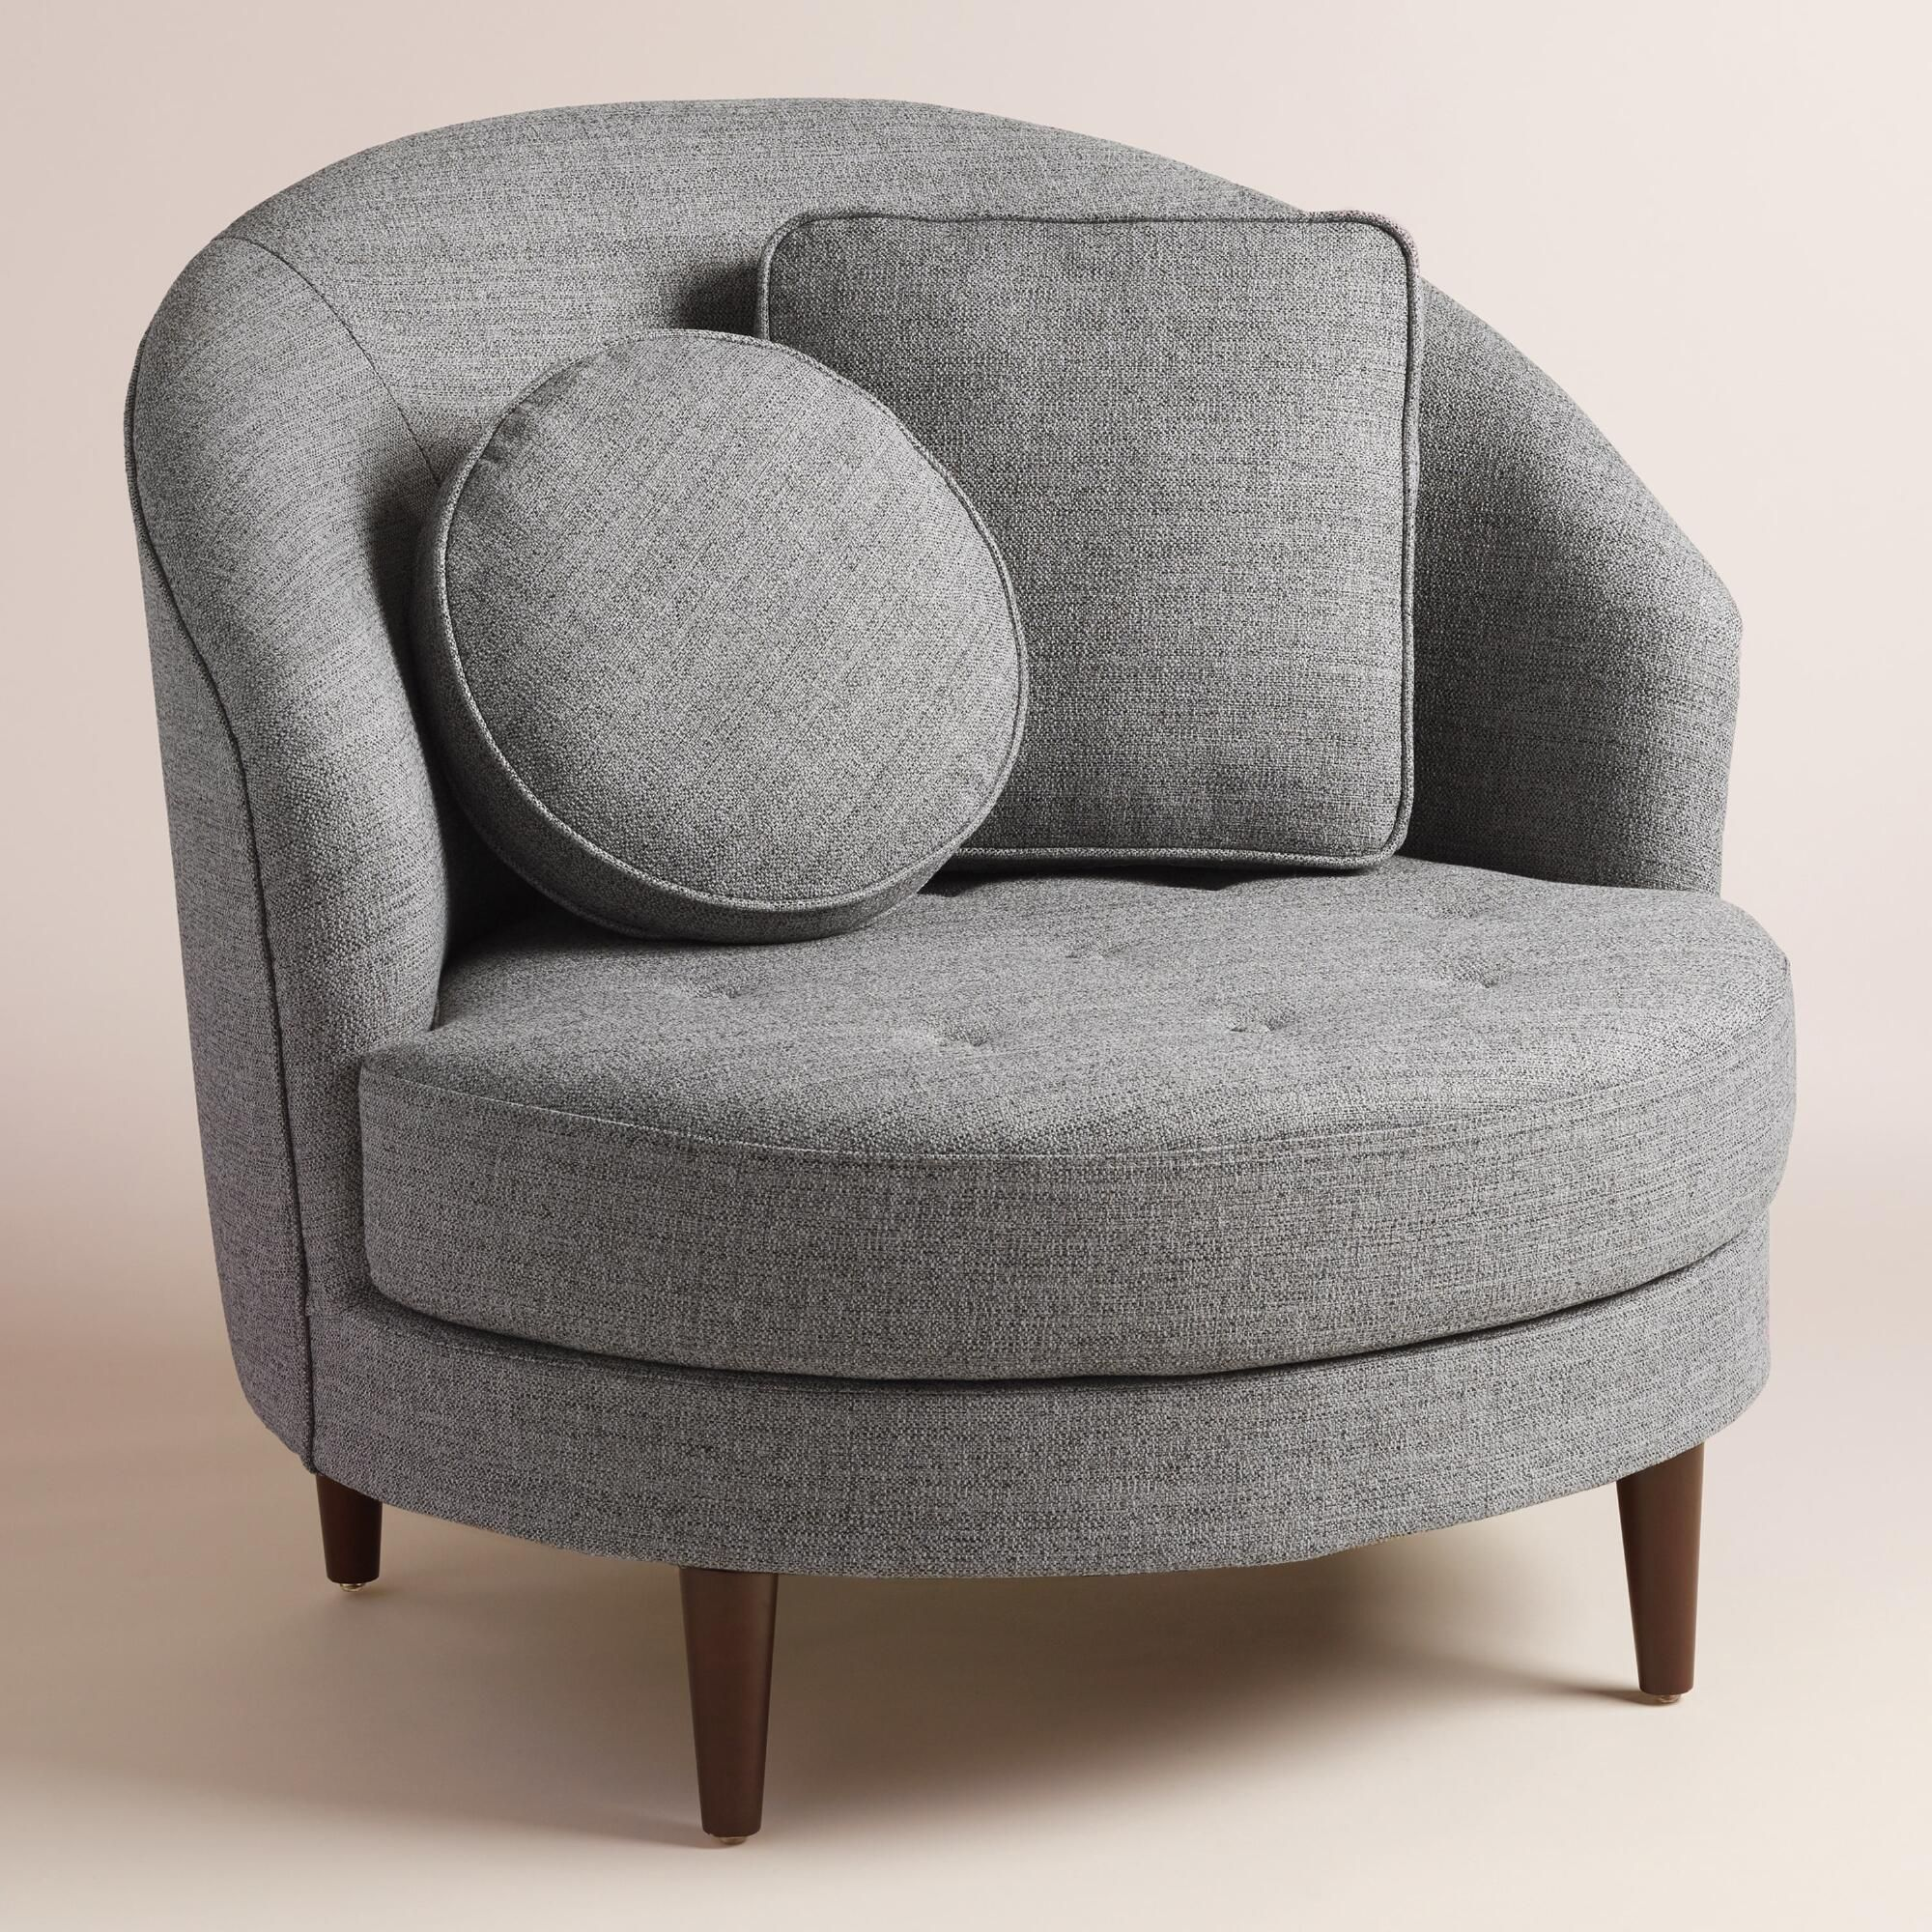 In a round, on-trend shape, our chair-and-a-half makes a ...